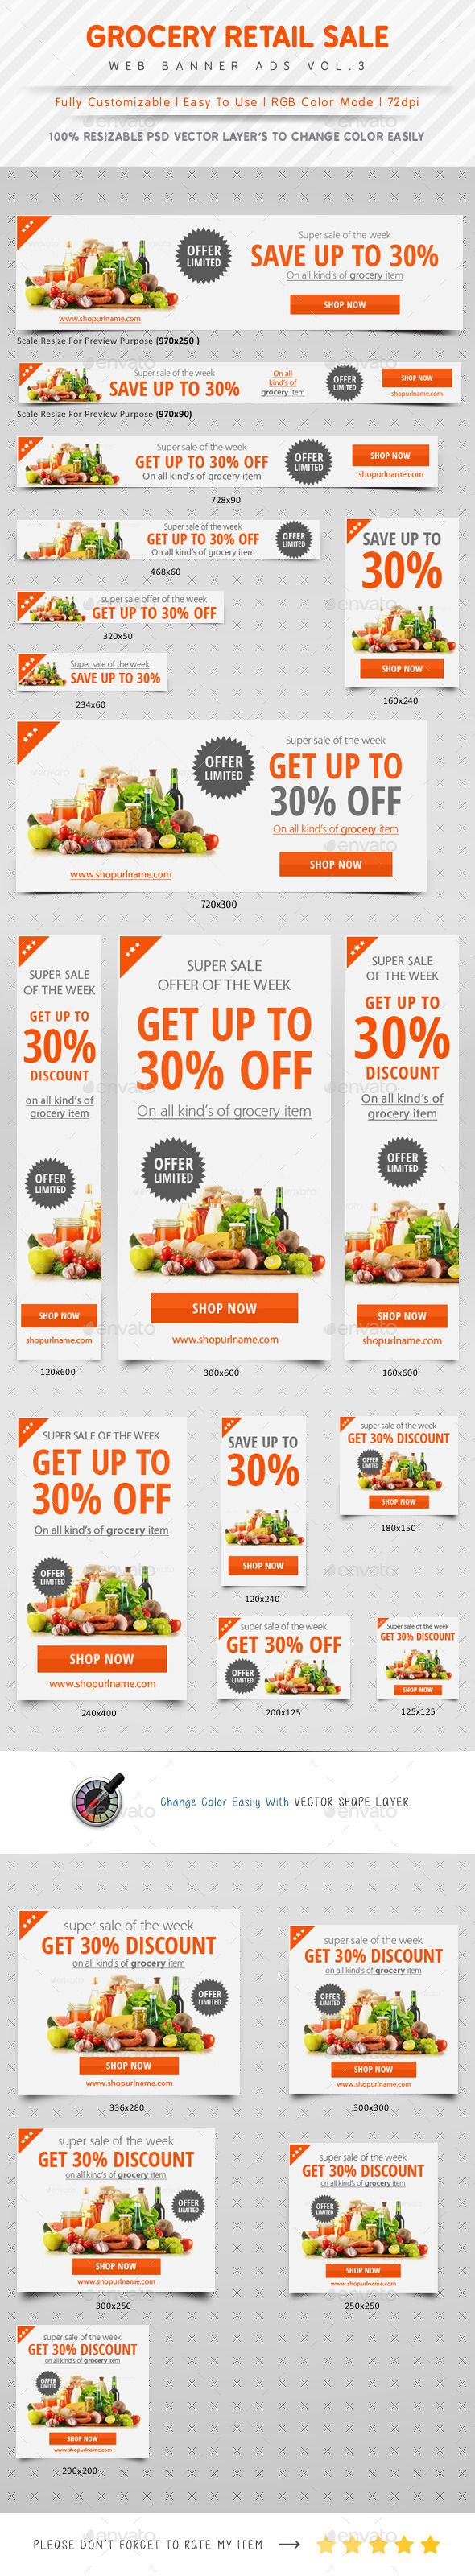 Grocery Retail Sale Web Banner Ads